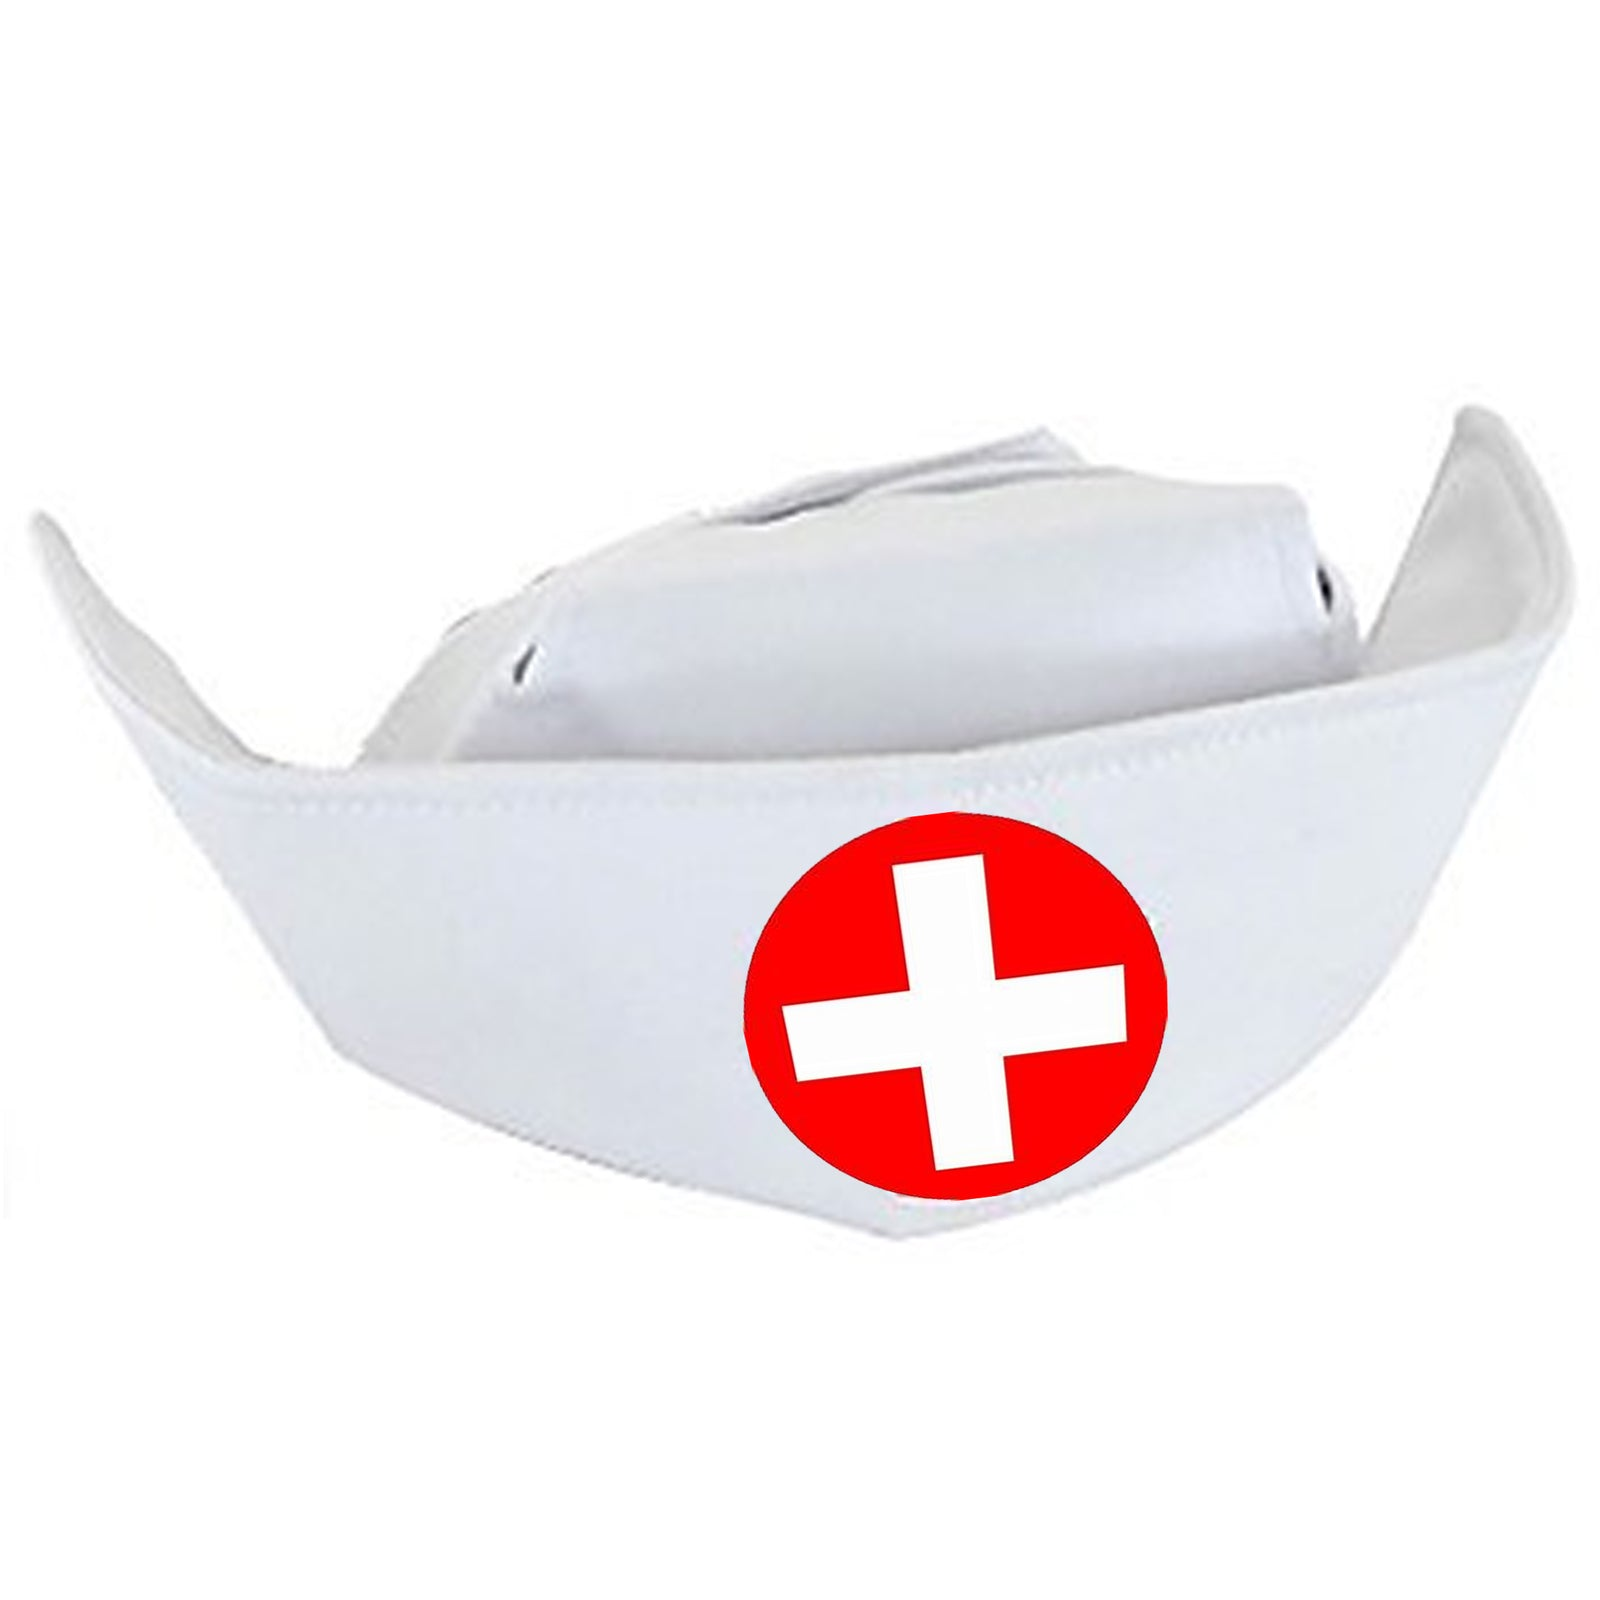 Nurse Hat - Deluxe Cotton